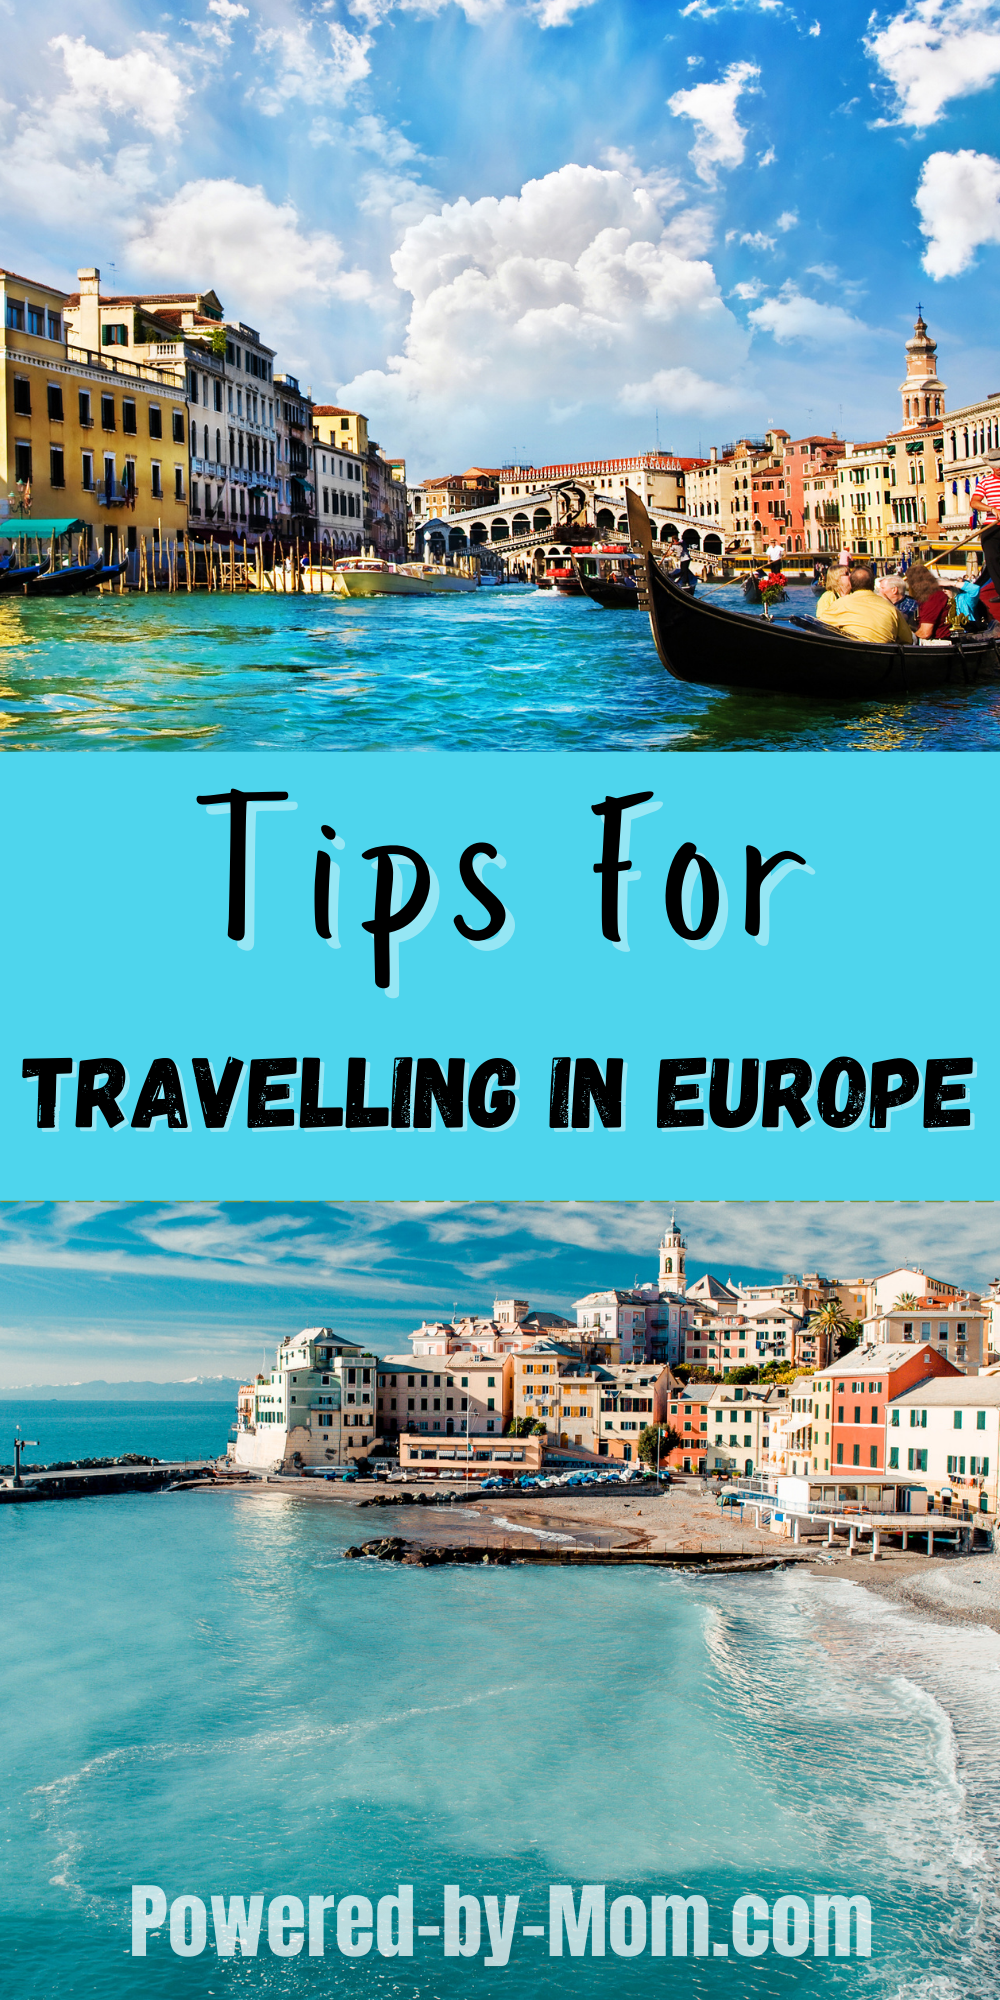 We're sharing some tips for travelling in Europe for a safe and fun trip. Many of these tips can be applied to anywhere you travel.